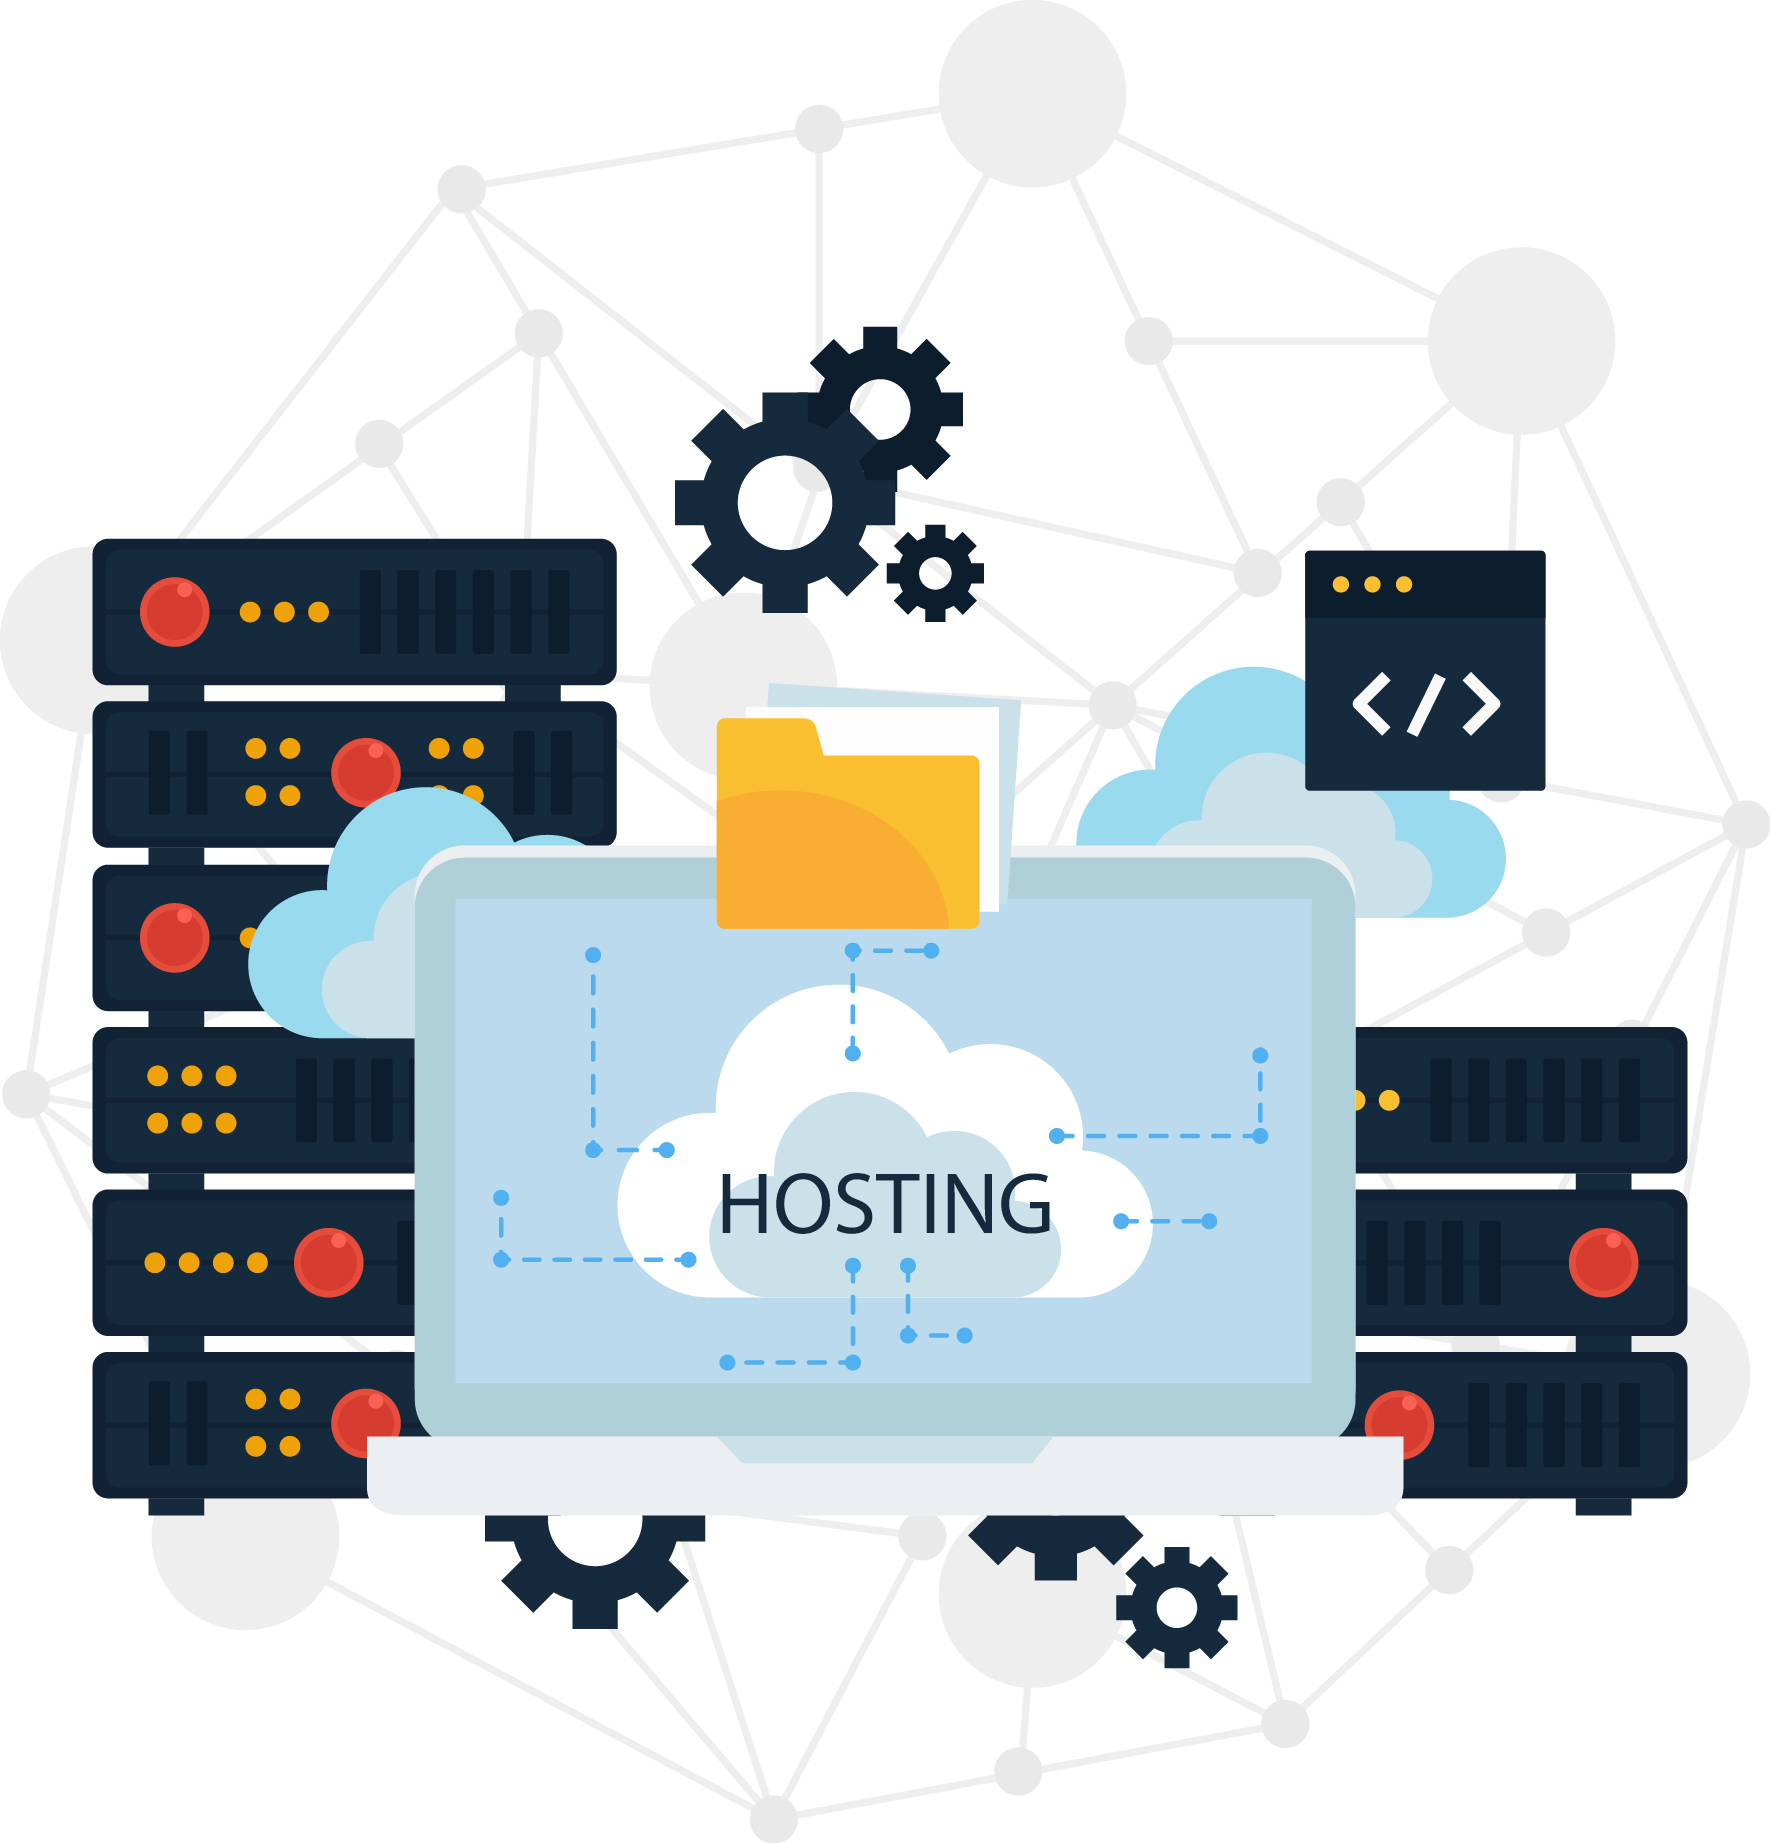 web hosting illustration